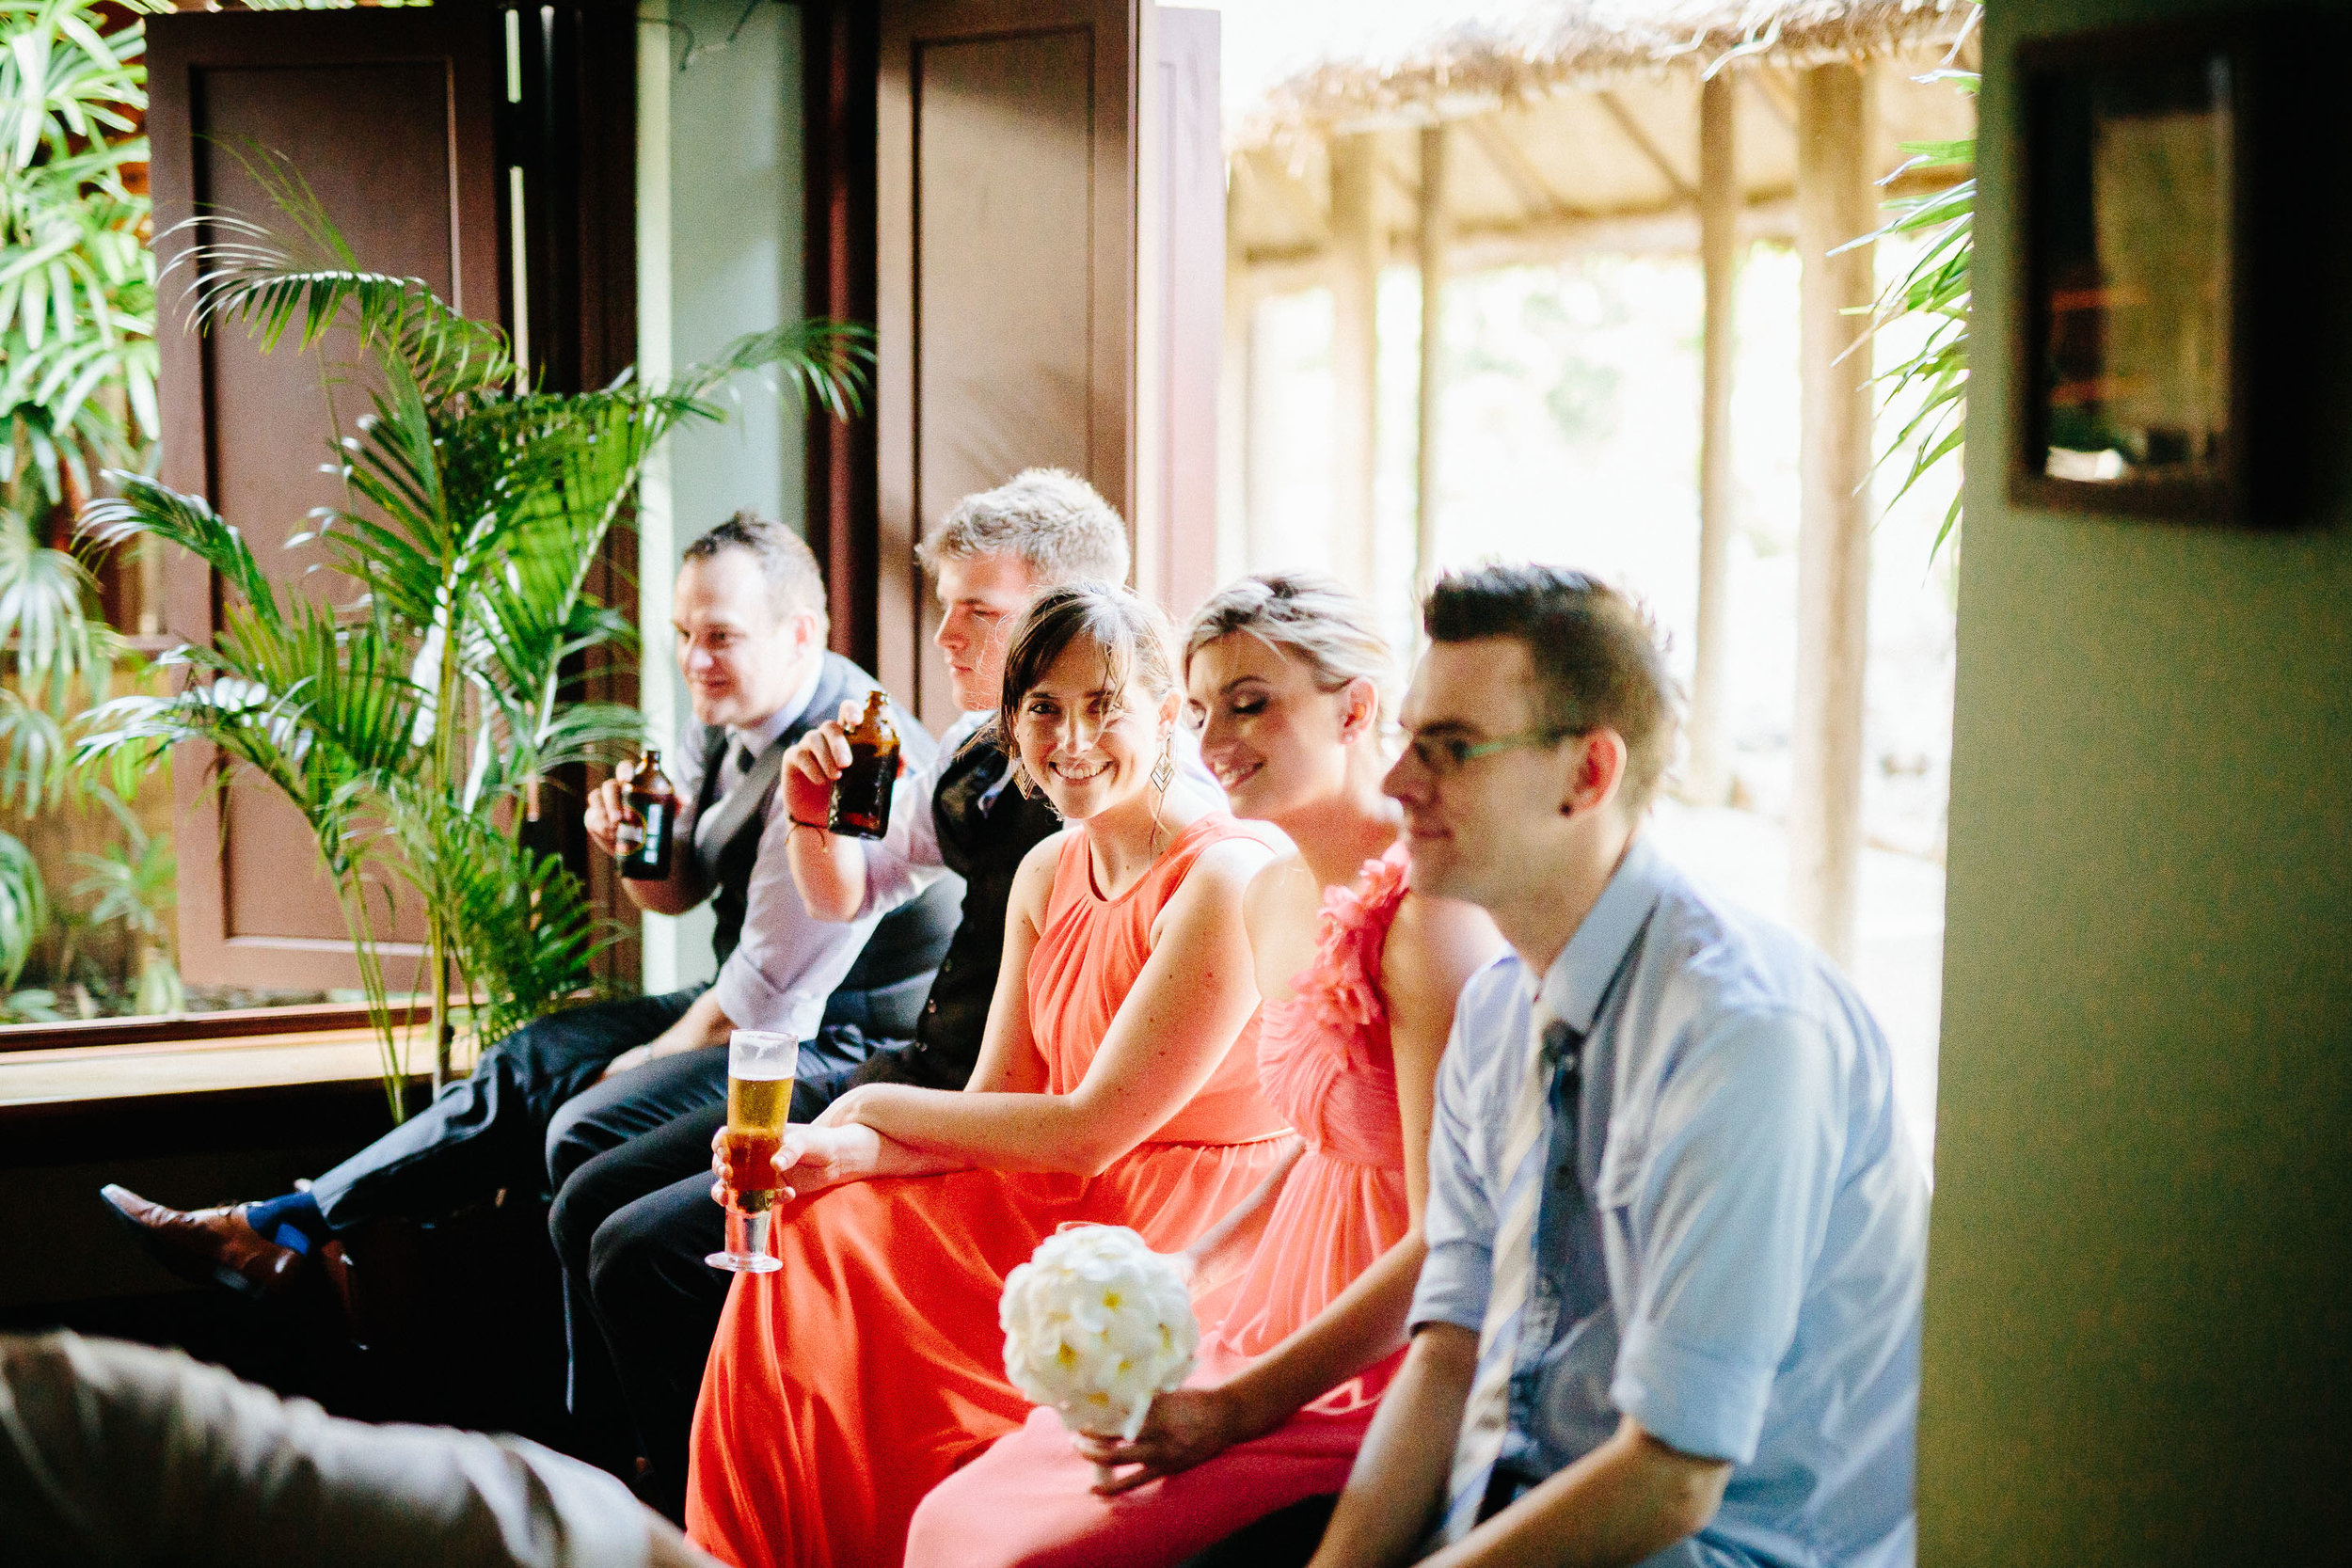 guests enjoying a drink before the reception